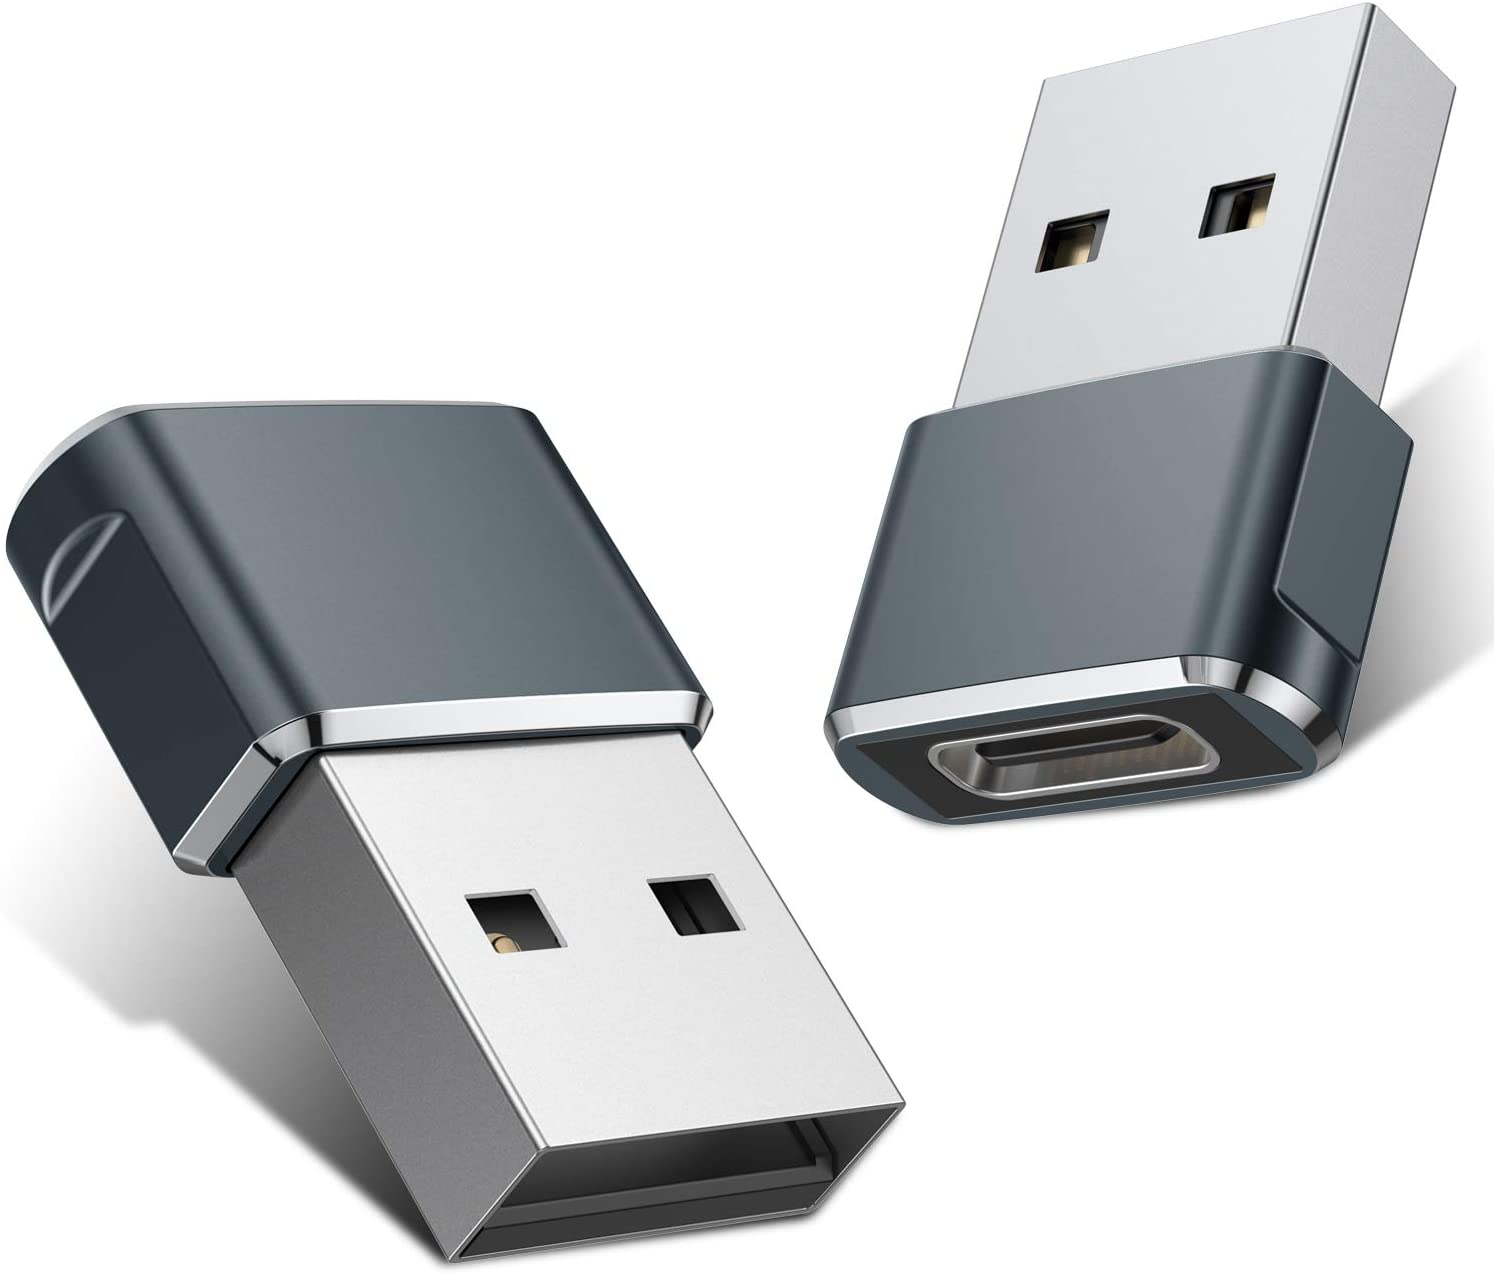 Amazon.com: USB C Female to USB Male Adapter (2 Pack),Type C to ...